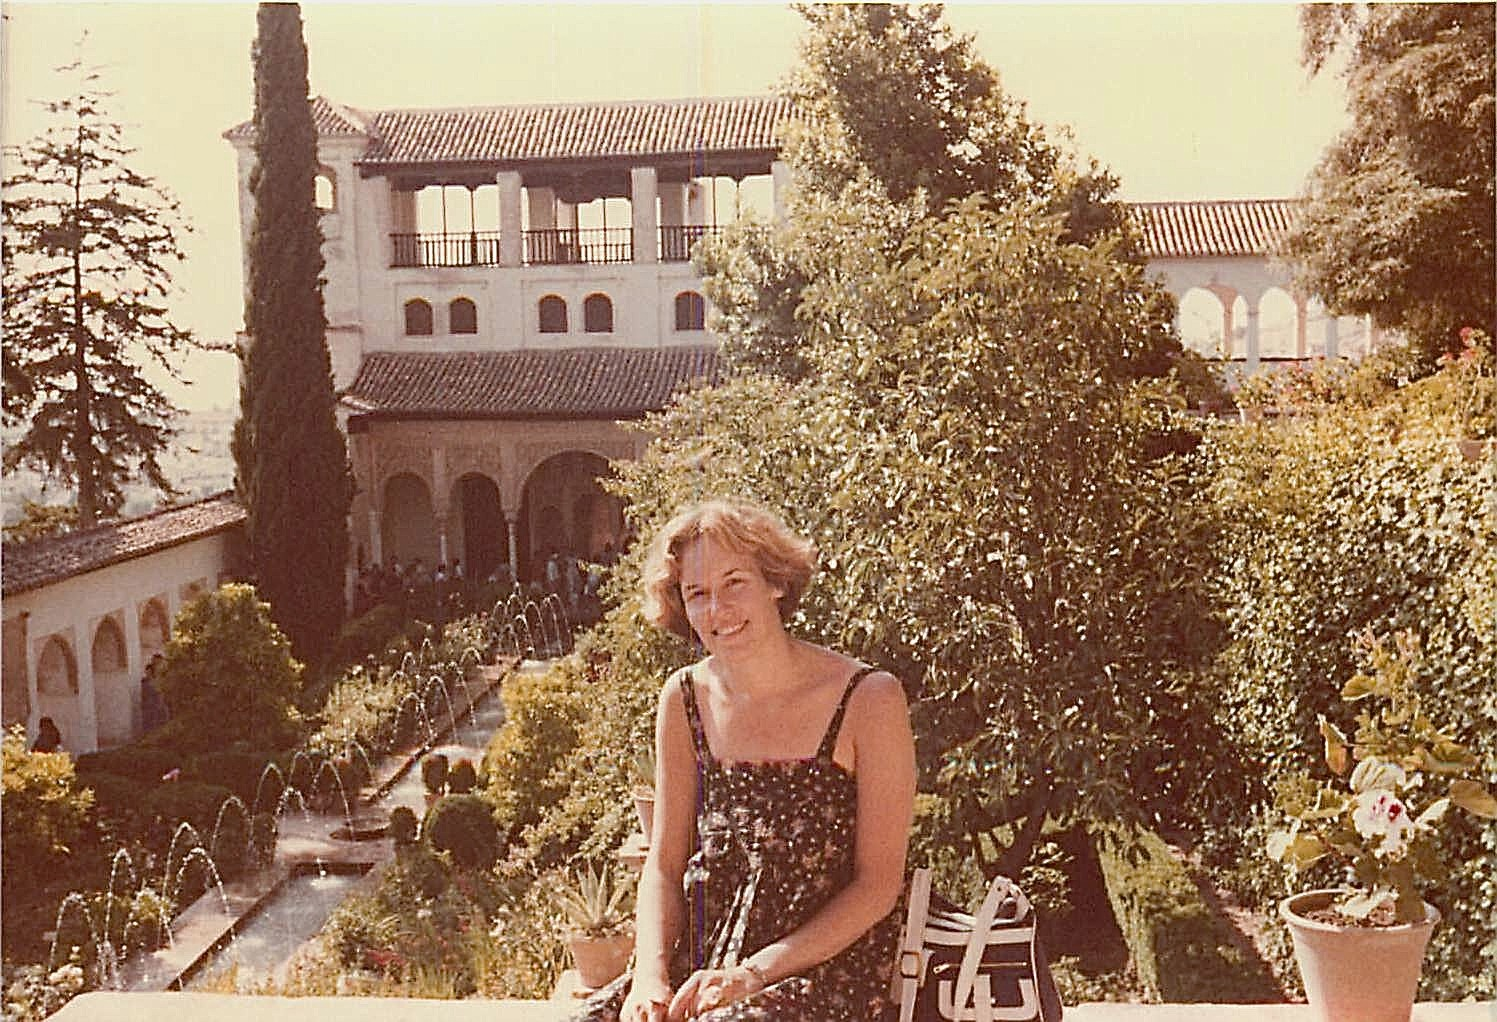 Lorraine, Granada, Spain 1979, Generalife summer palace, near the Alhambra